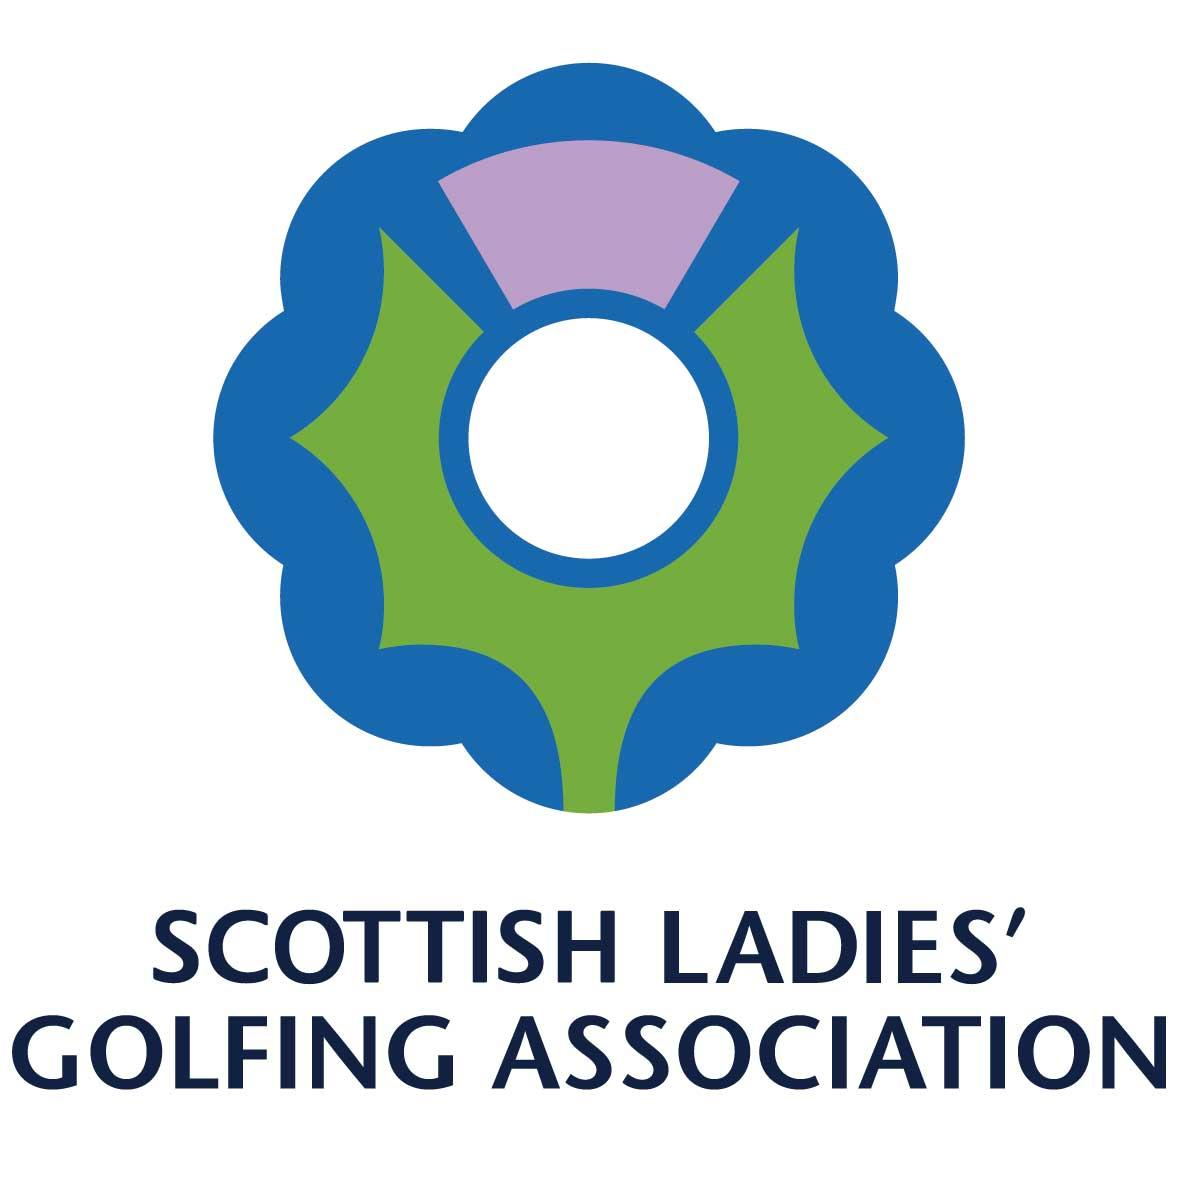 Scottish Ladies Golfing Association